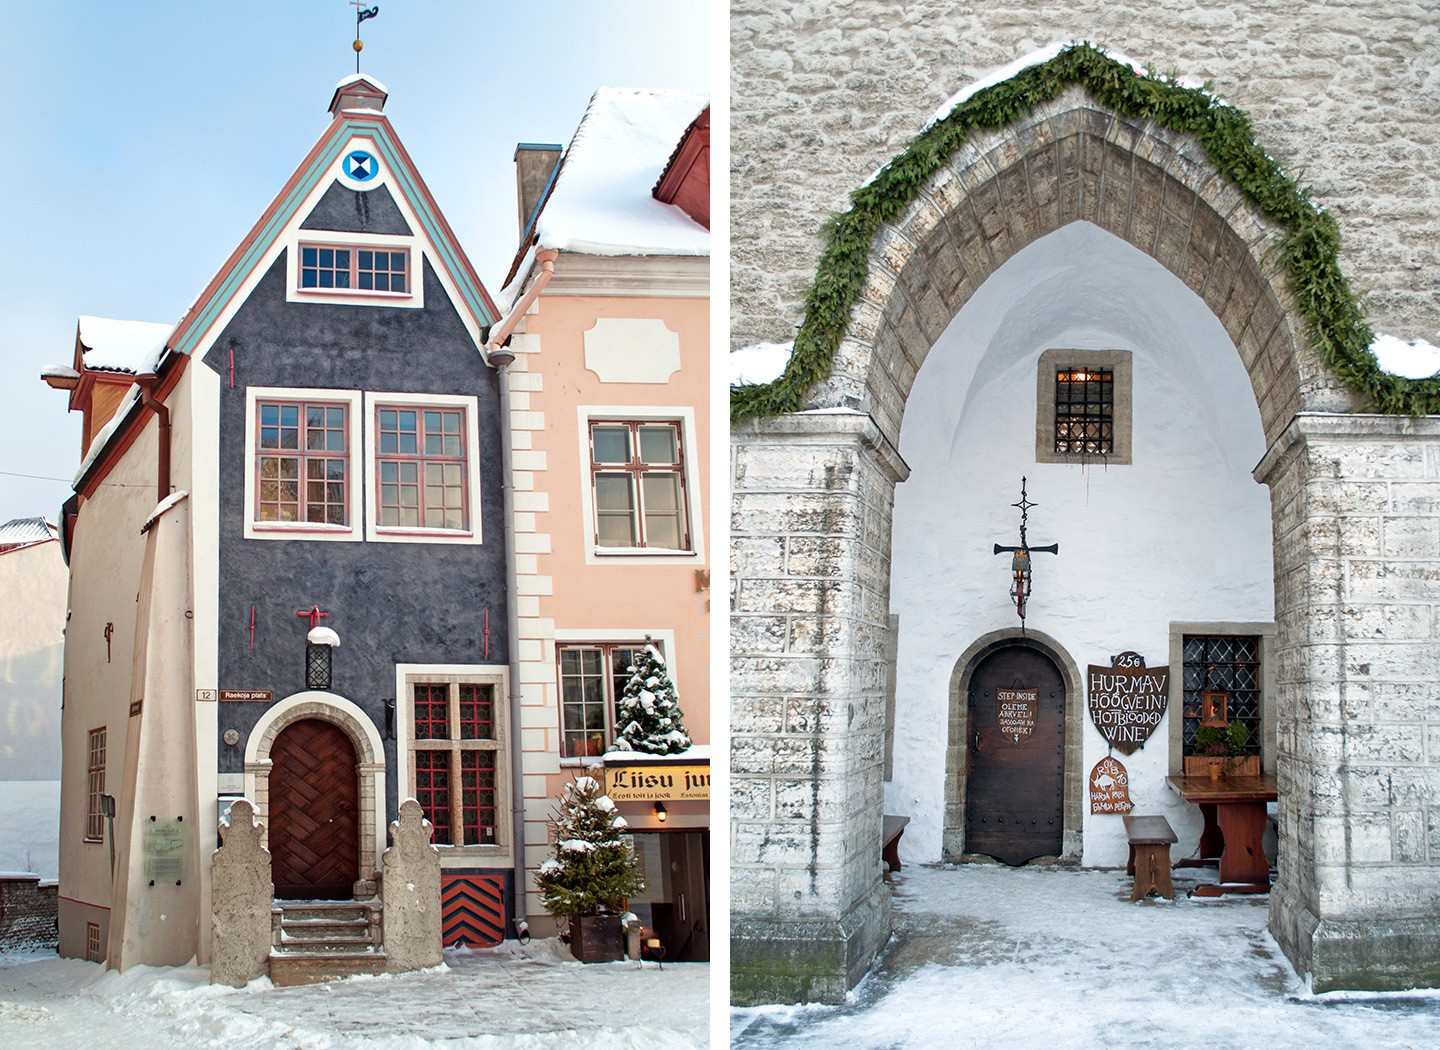 Medieval builsings in the old town of Tallinn in winter